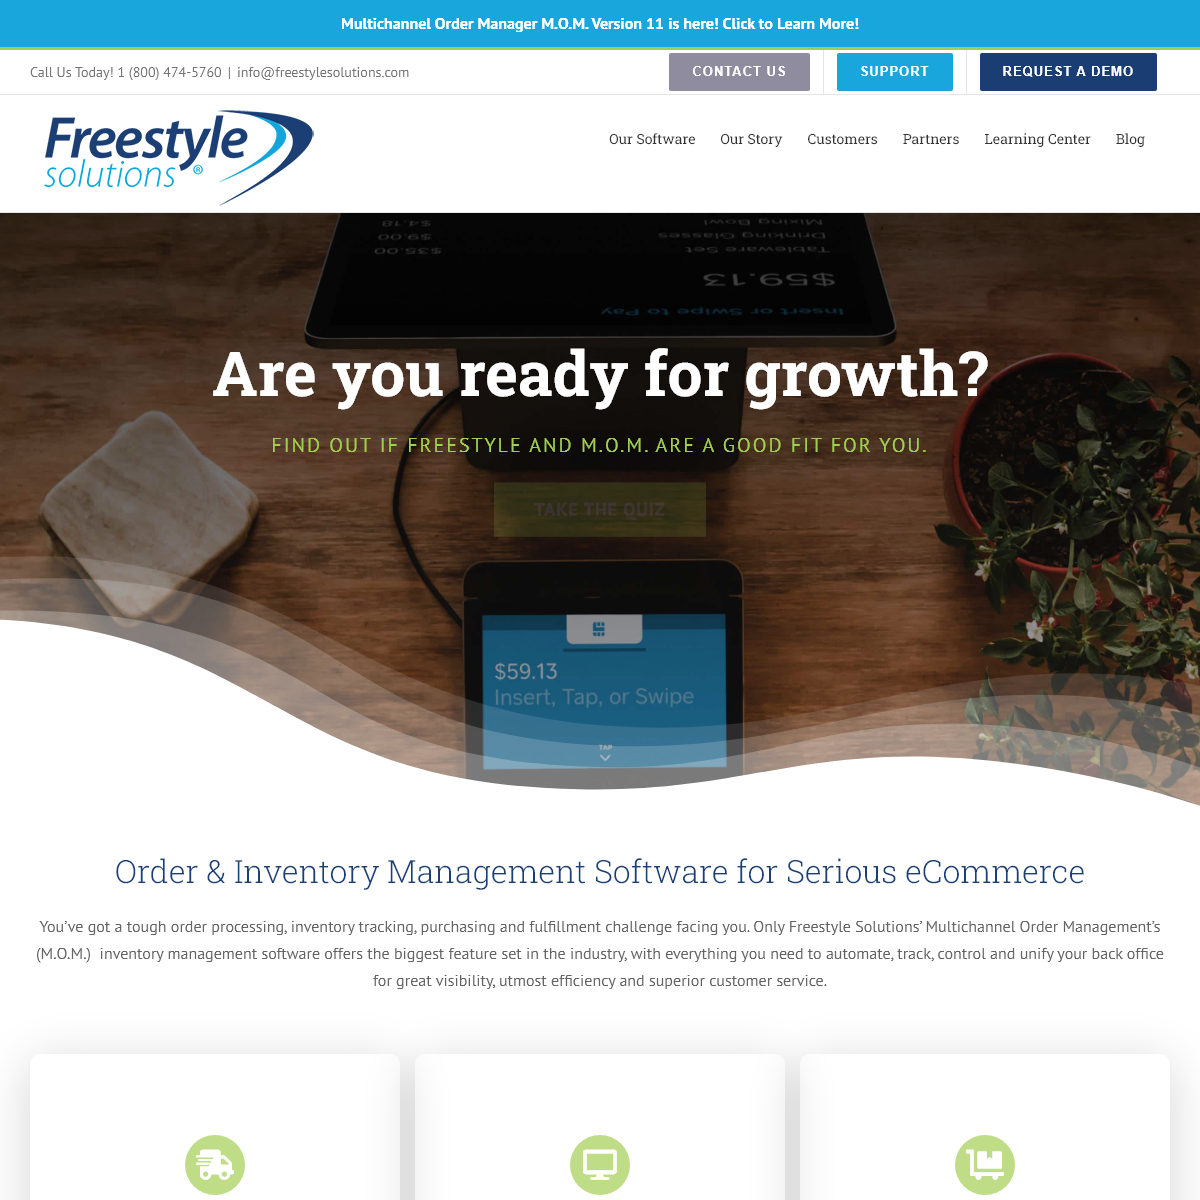 Order & Inventory Management Software - Freestyle